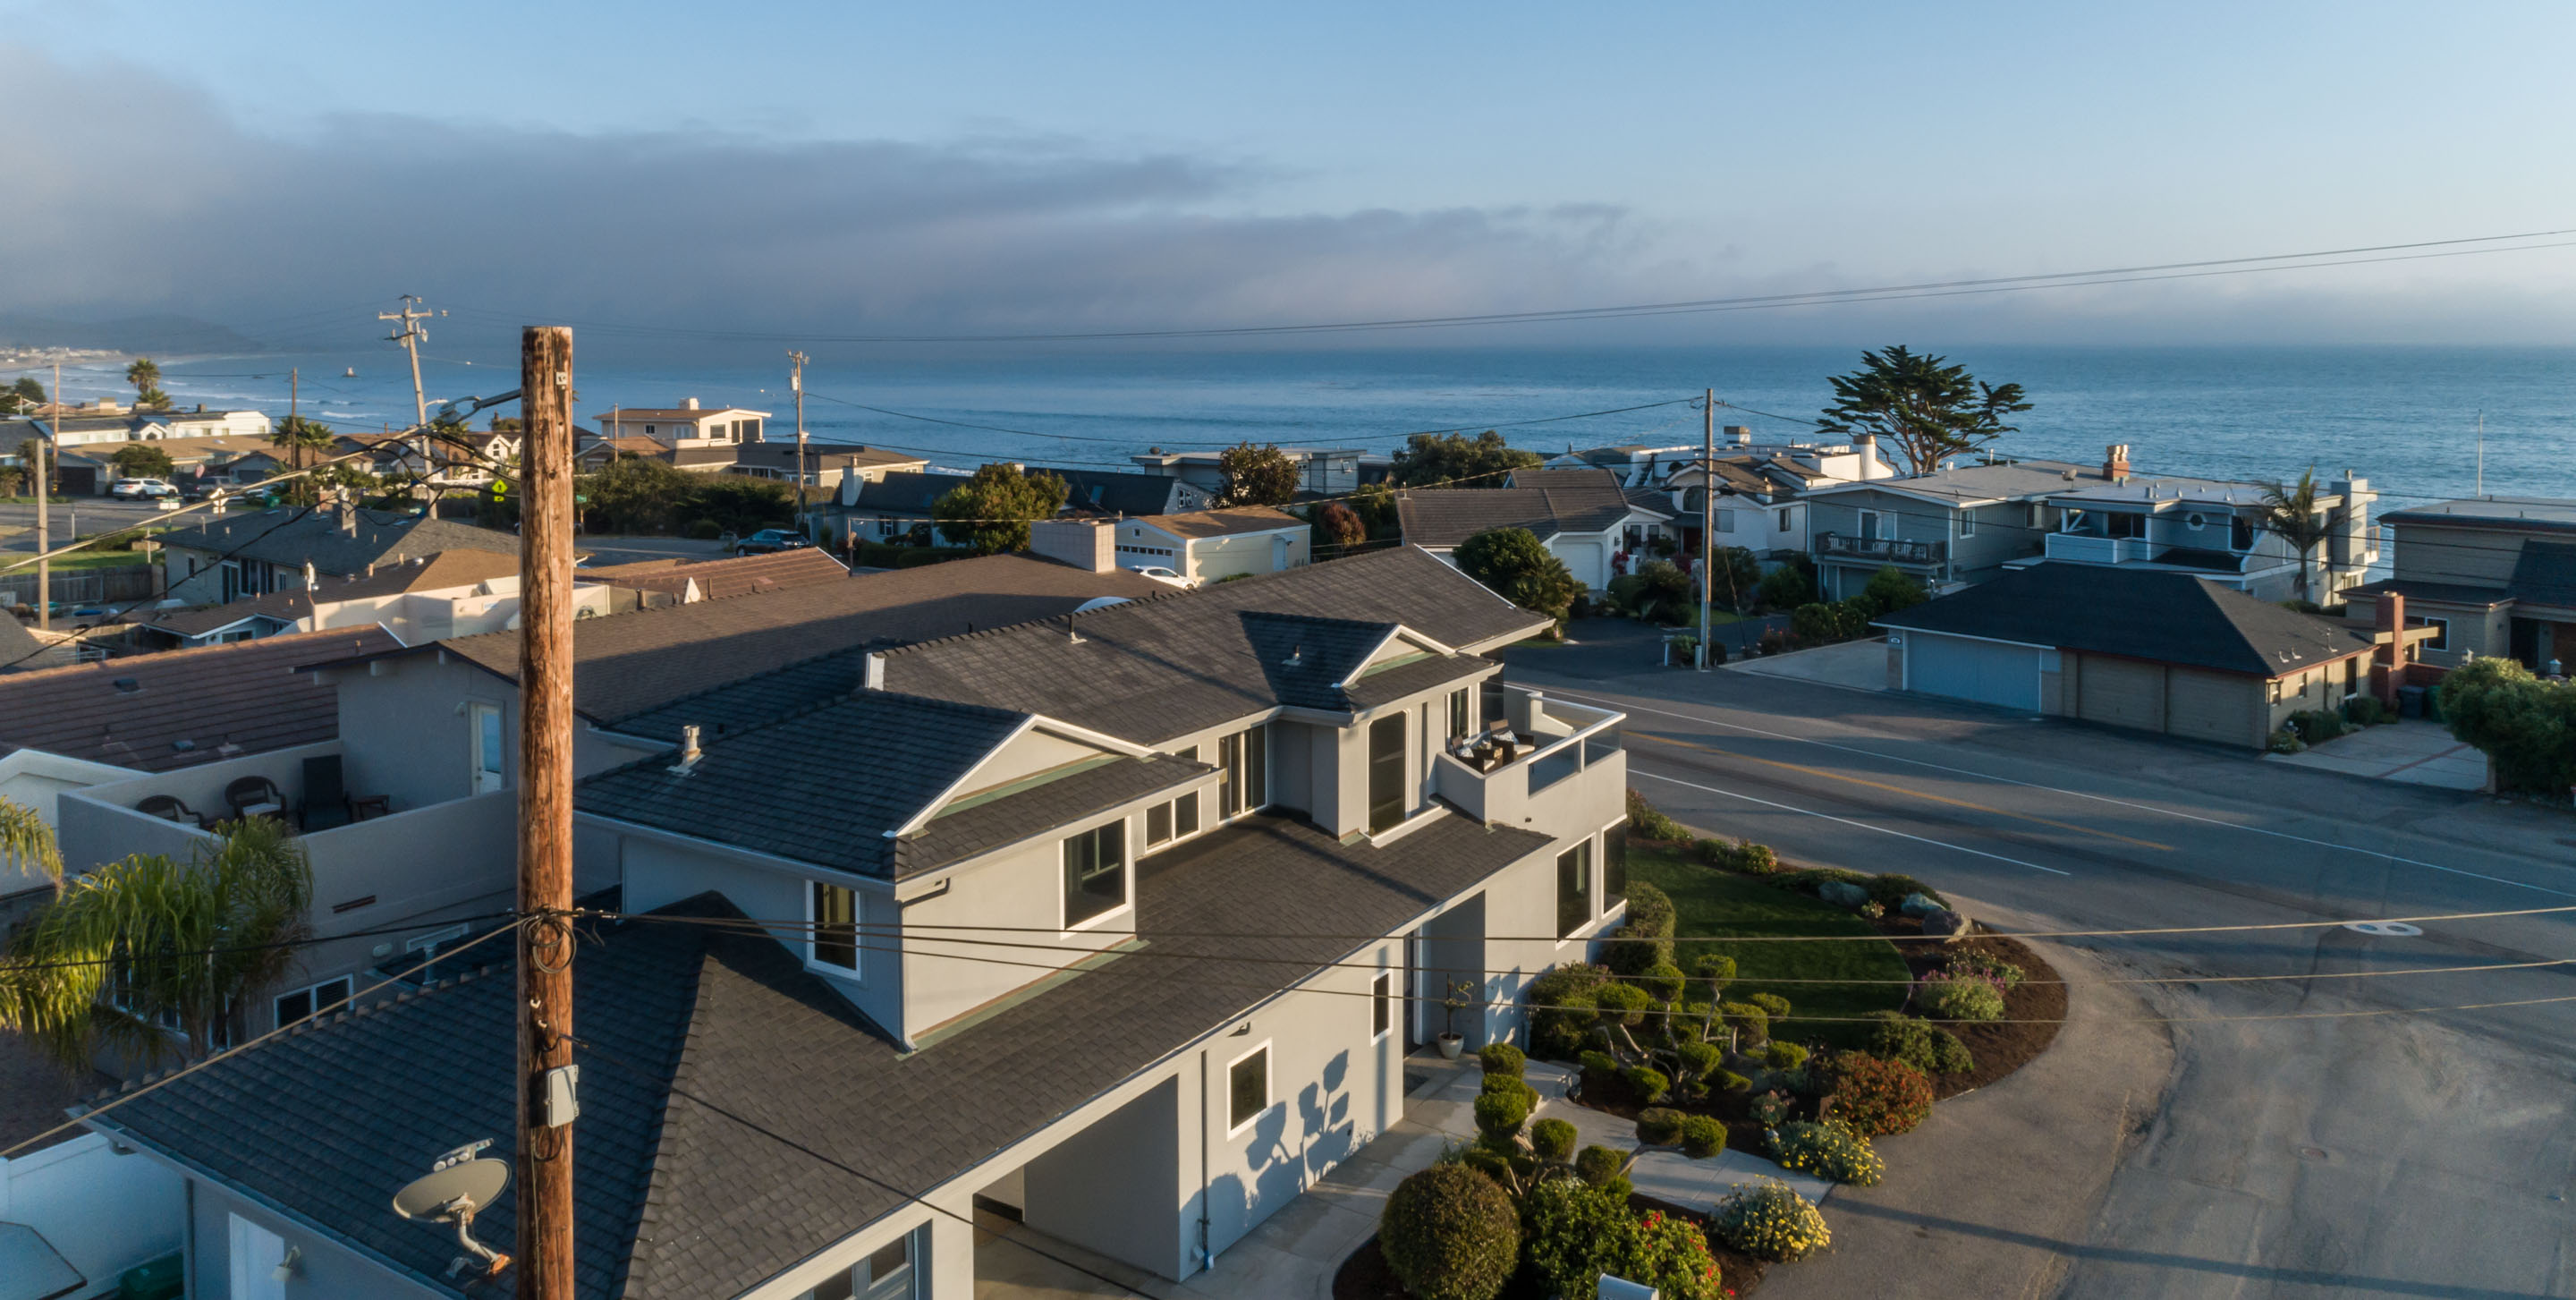 Coastal View Home For Sale Walk to Ocean Pacific Ave Cayucos Ca 93430